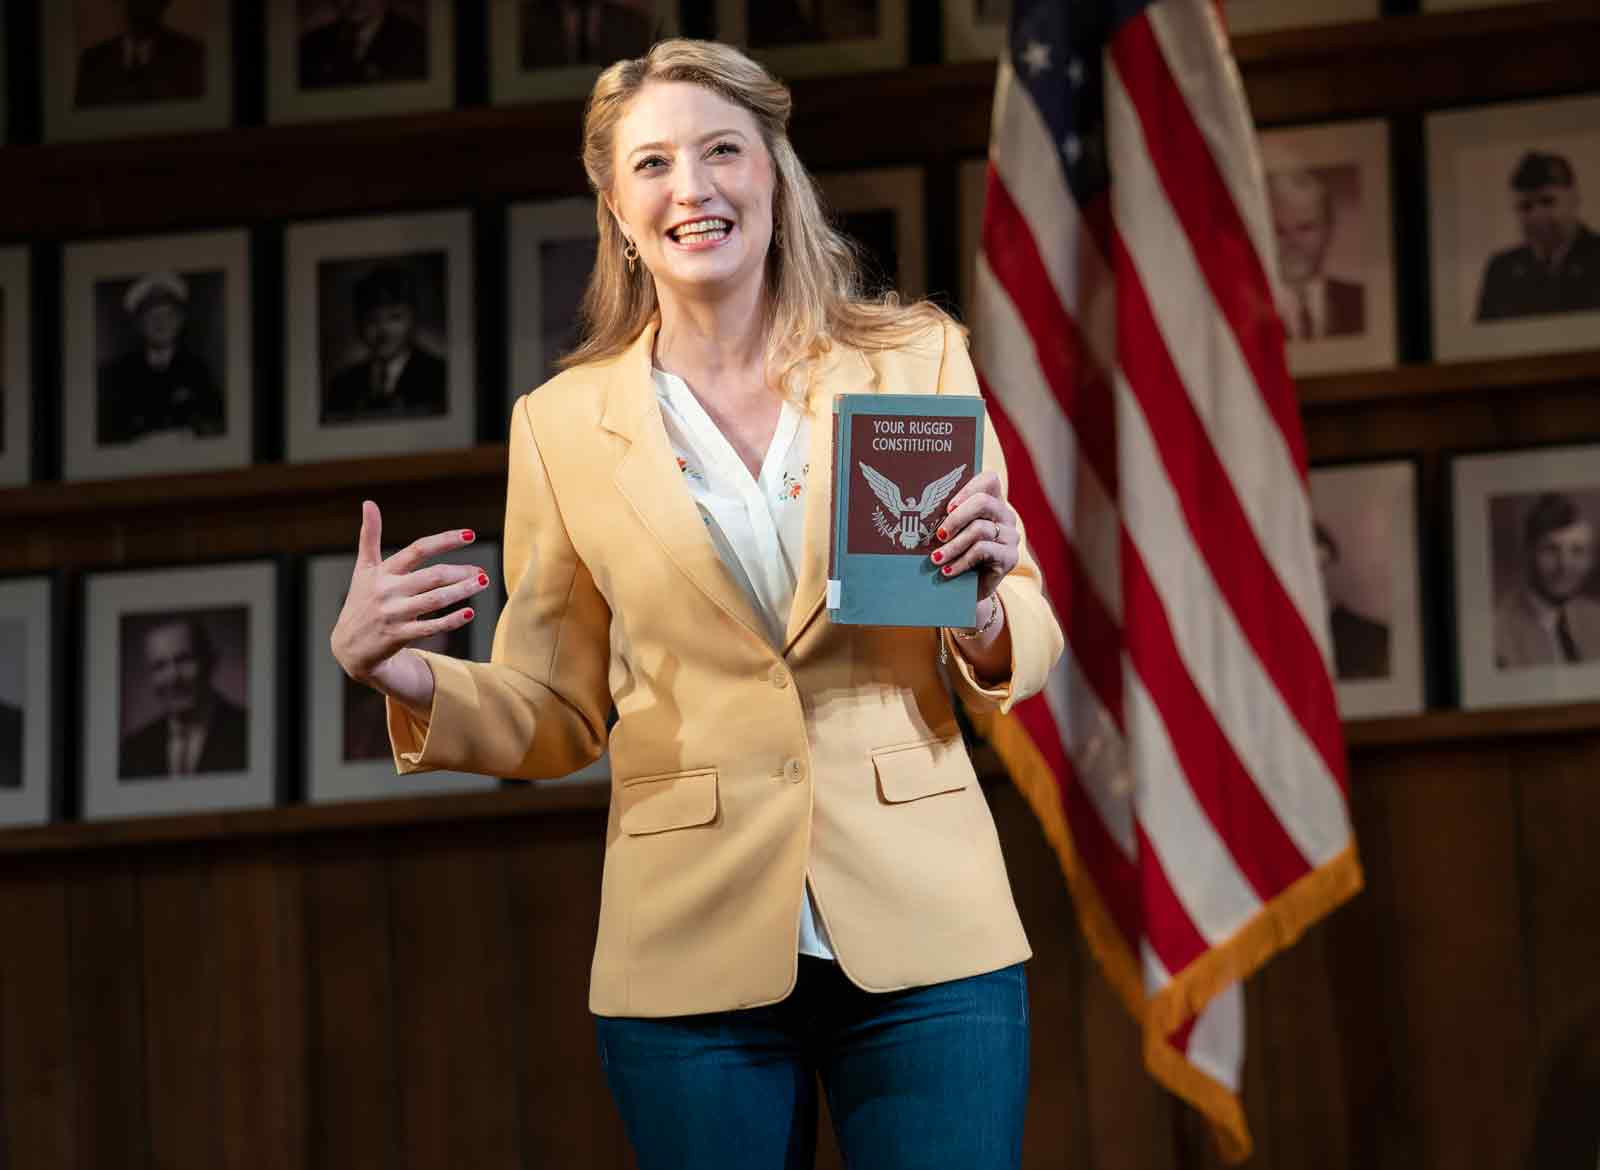 Heidi Schreck in Schreck's What the Constitution Means to Me, 2019